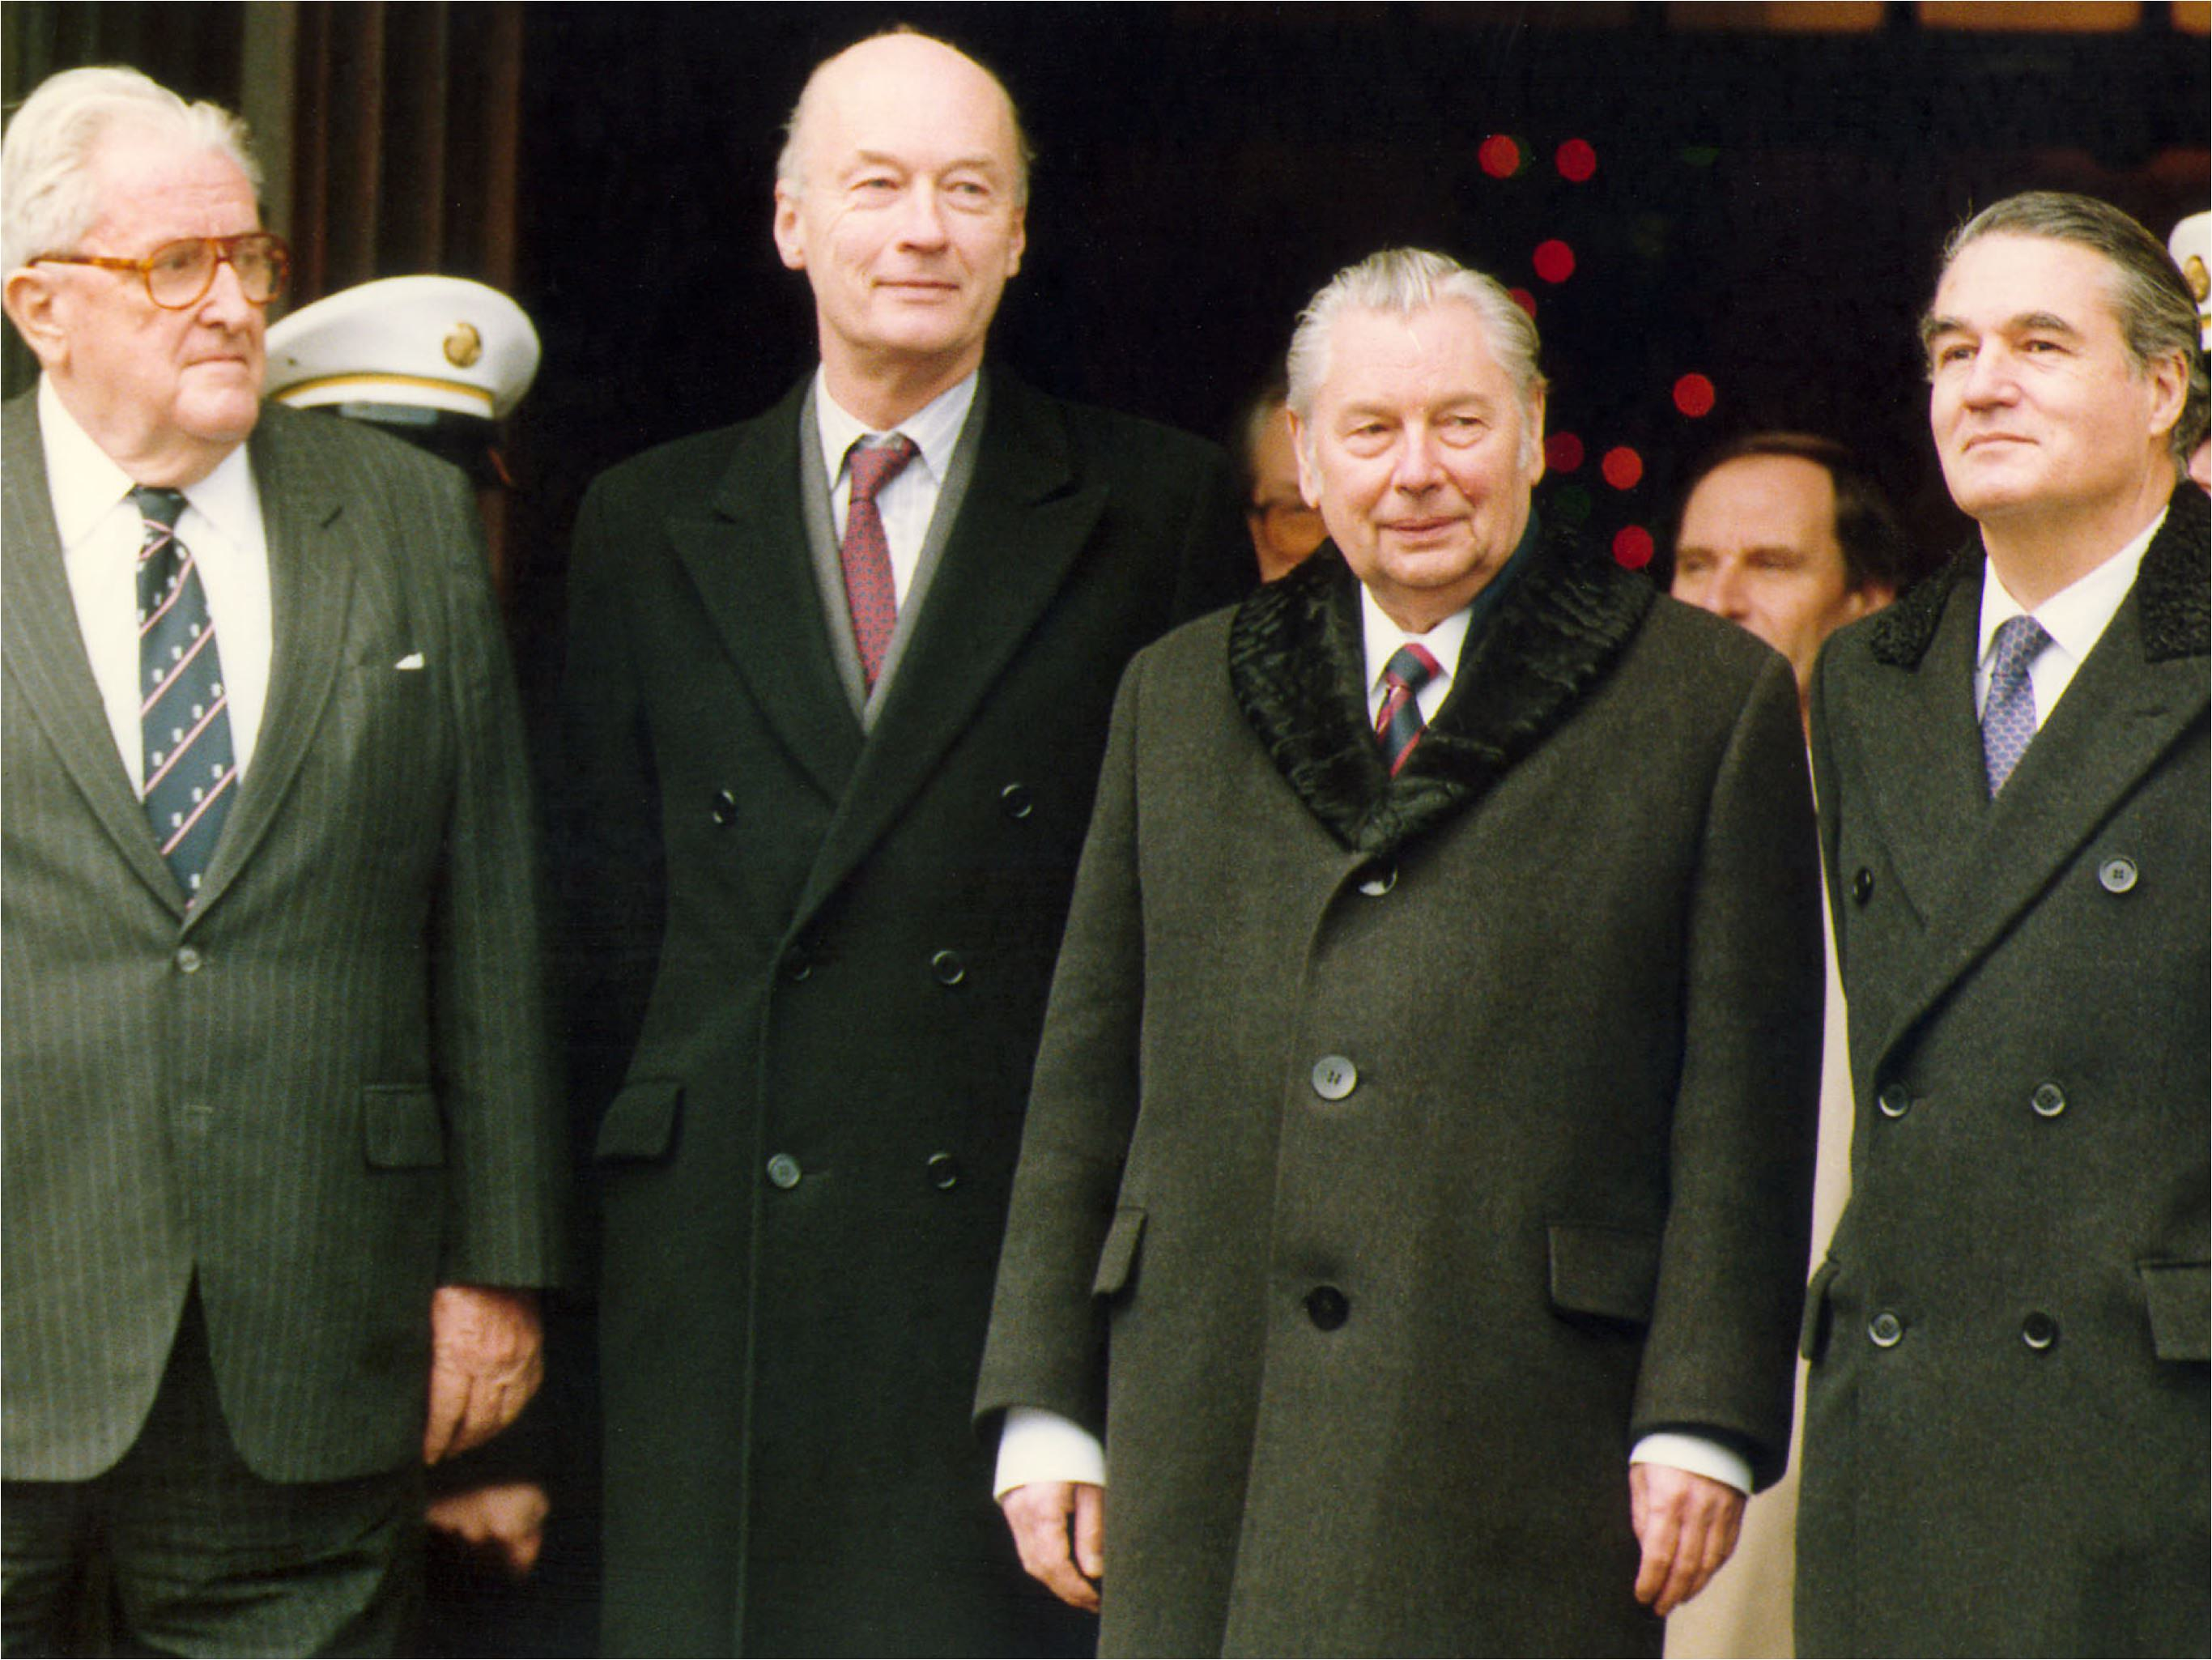 From left to right are: Vernon Walters (U.S.), Sir Christopher Mallaby (Great Britain), Wjatsheslav Kotshemassov (Soviet Union) and Serge Boidevais (France).